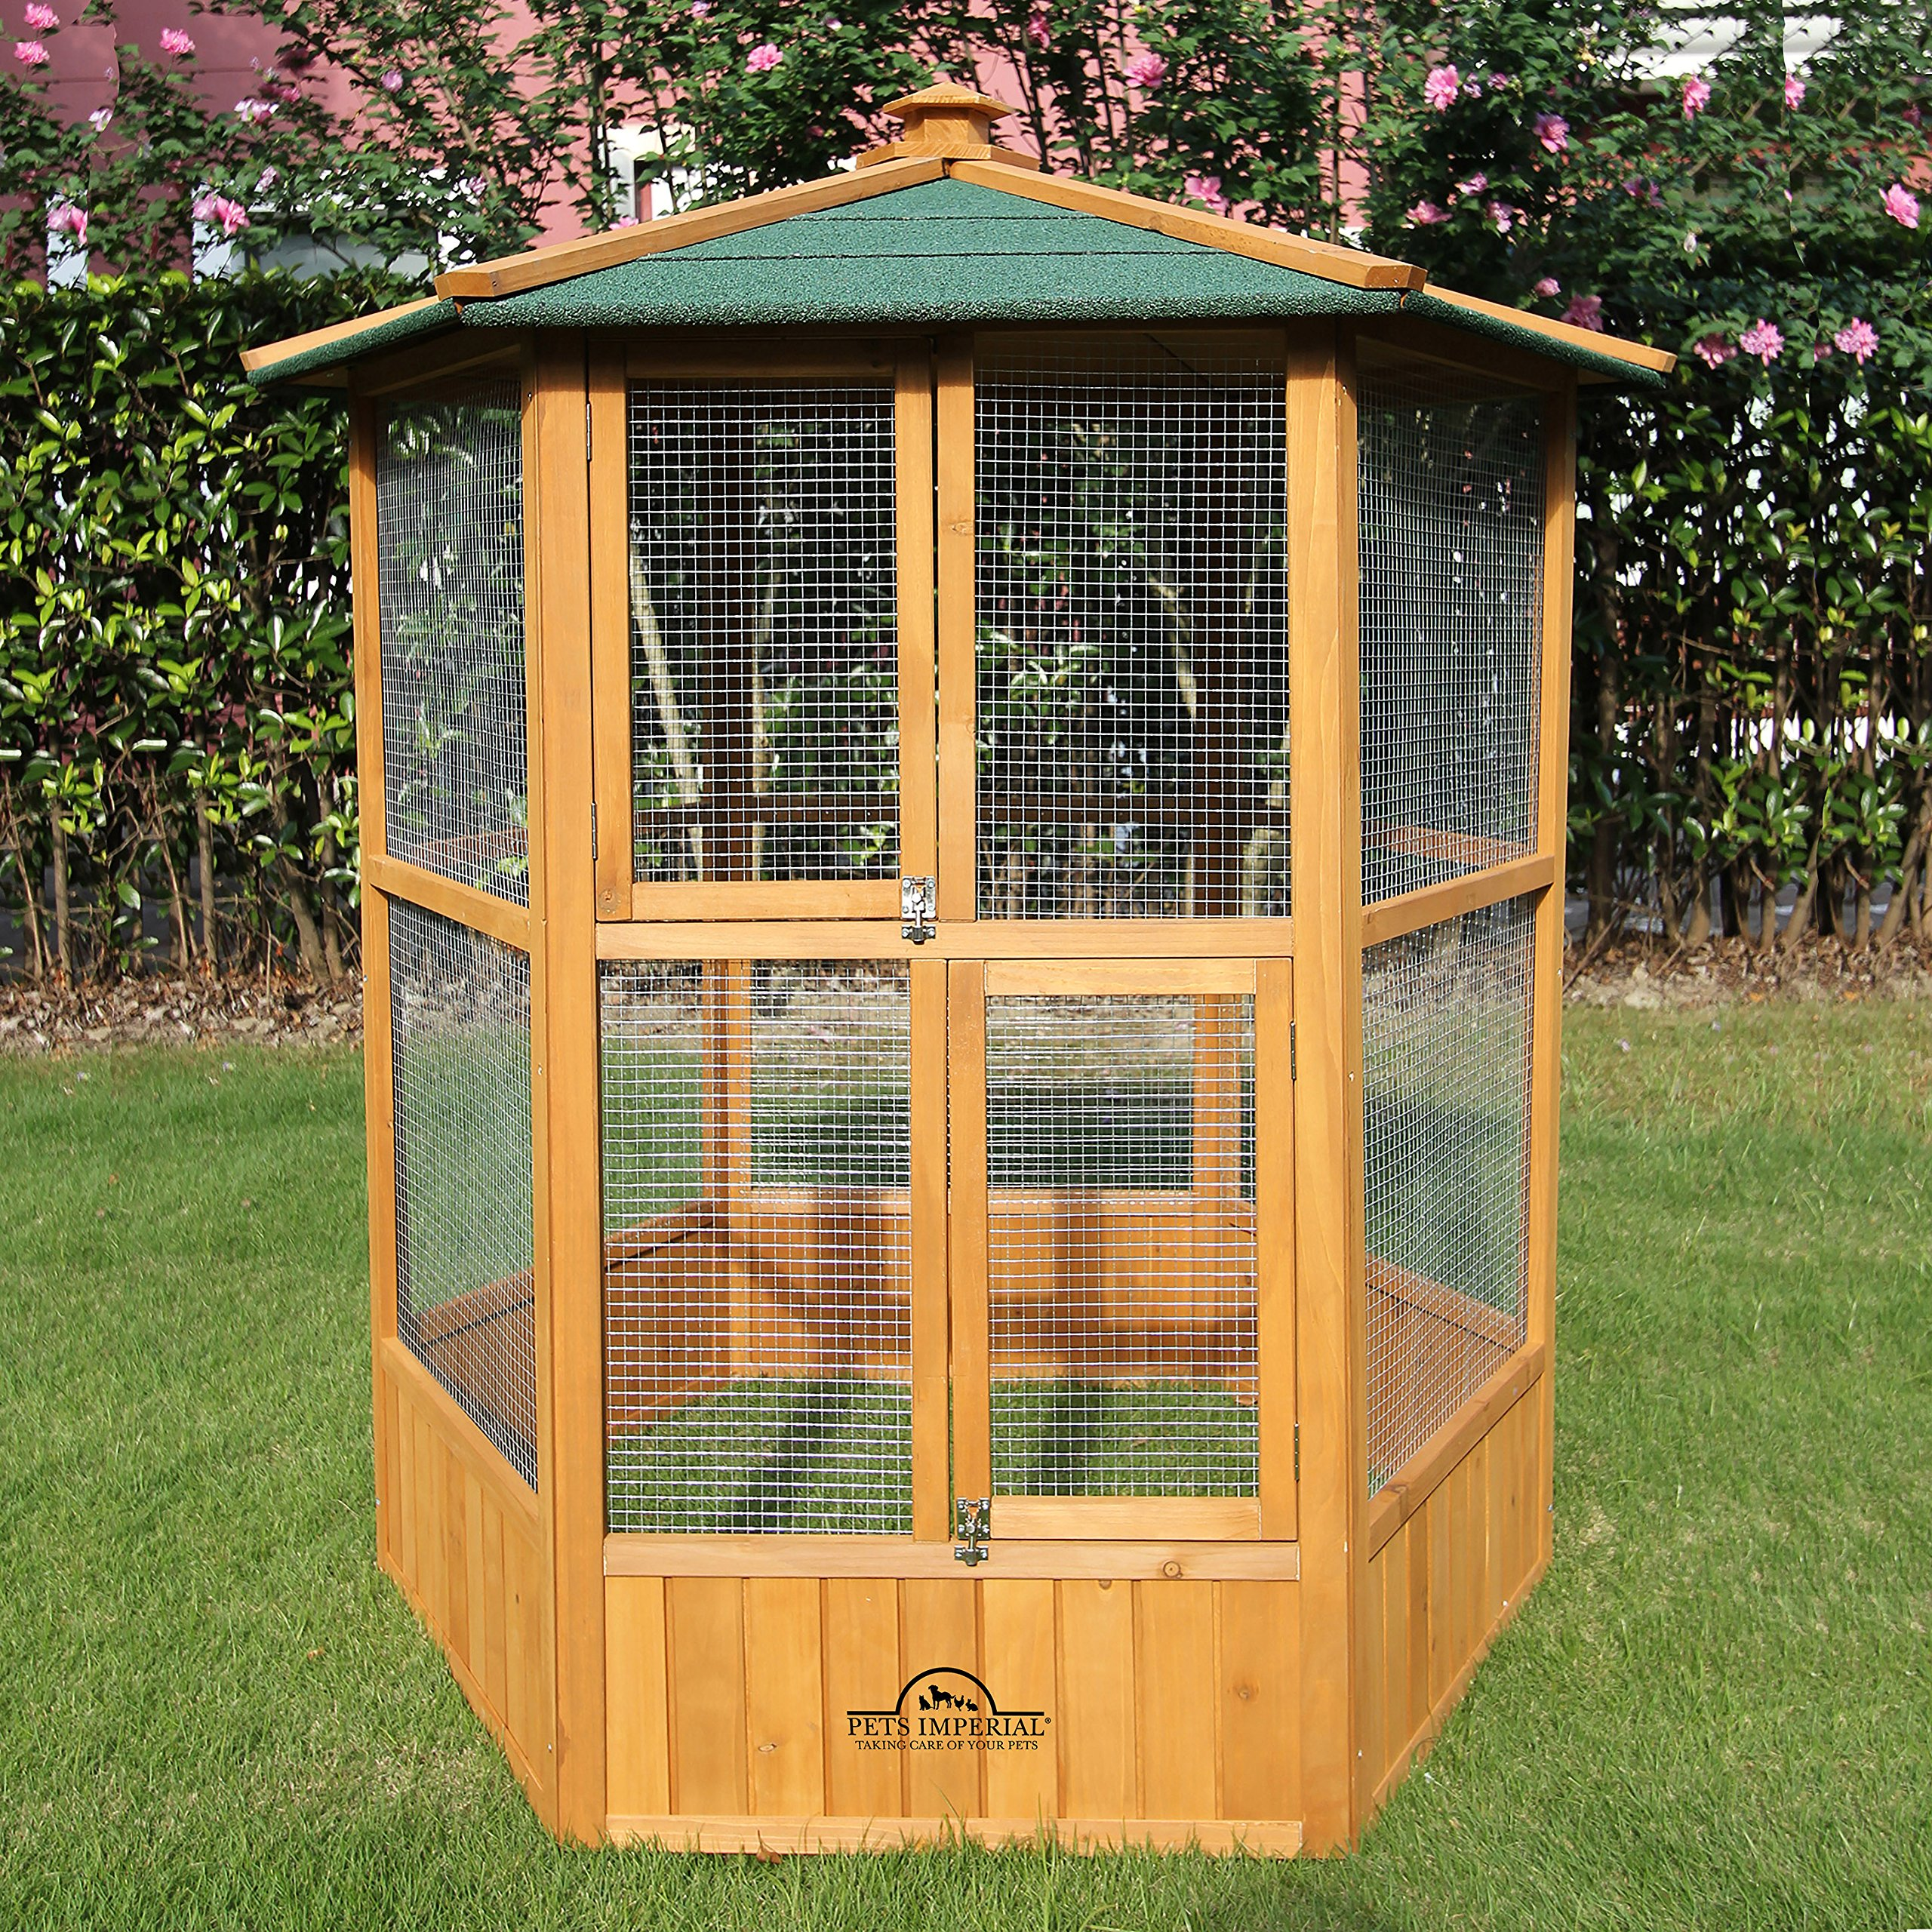 Pets Imperial Stunning Wooden Bird Aviary Hexgonal Design 5ft 2'' by 4ft 9'' Suitable for Small Birds & Animals